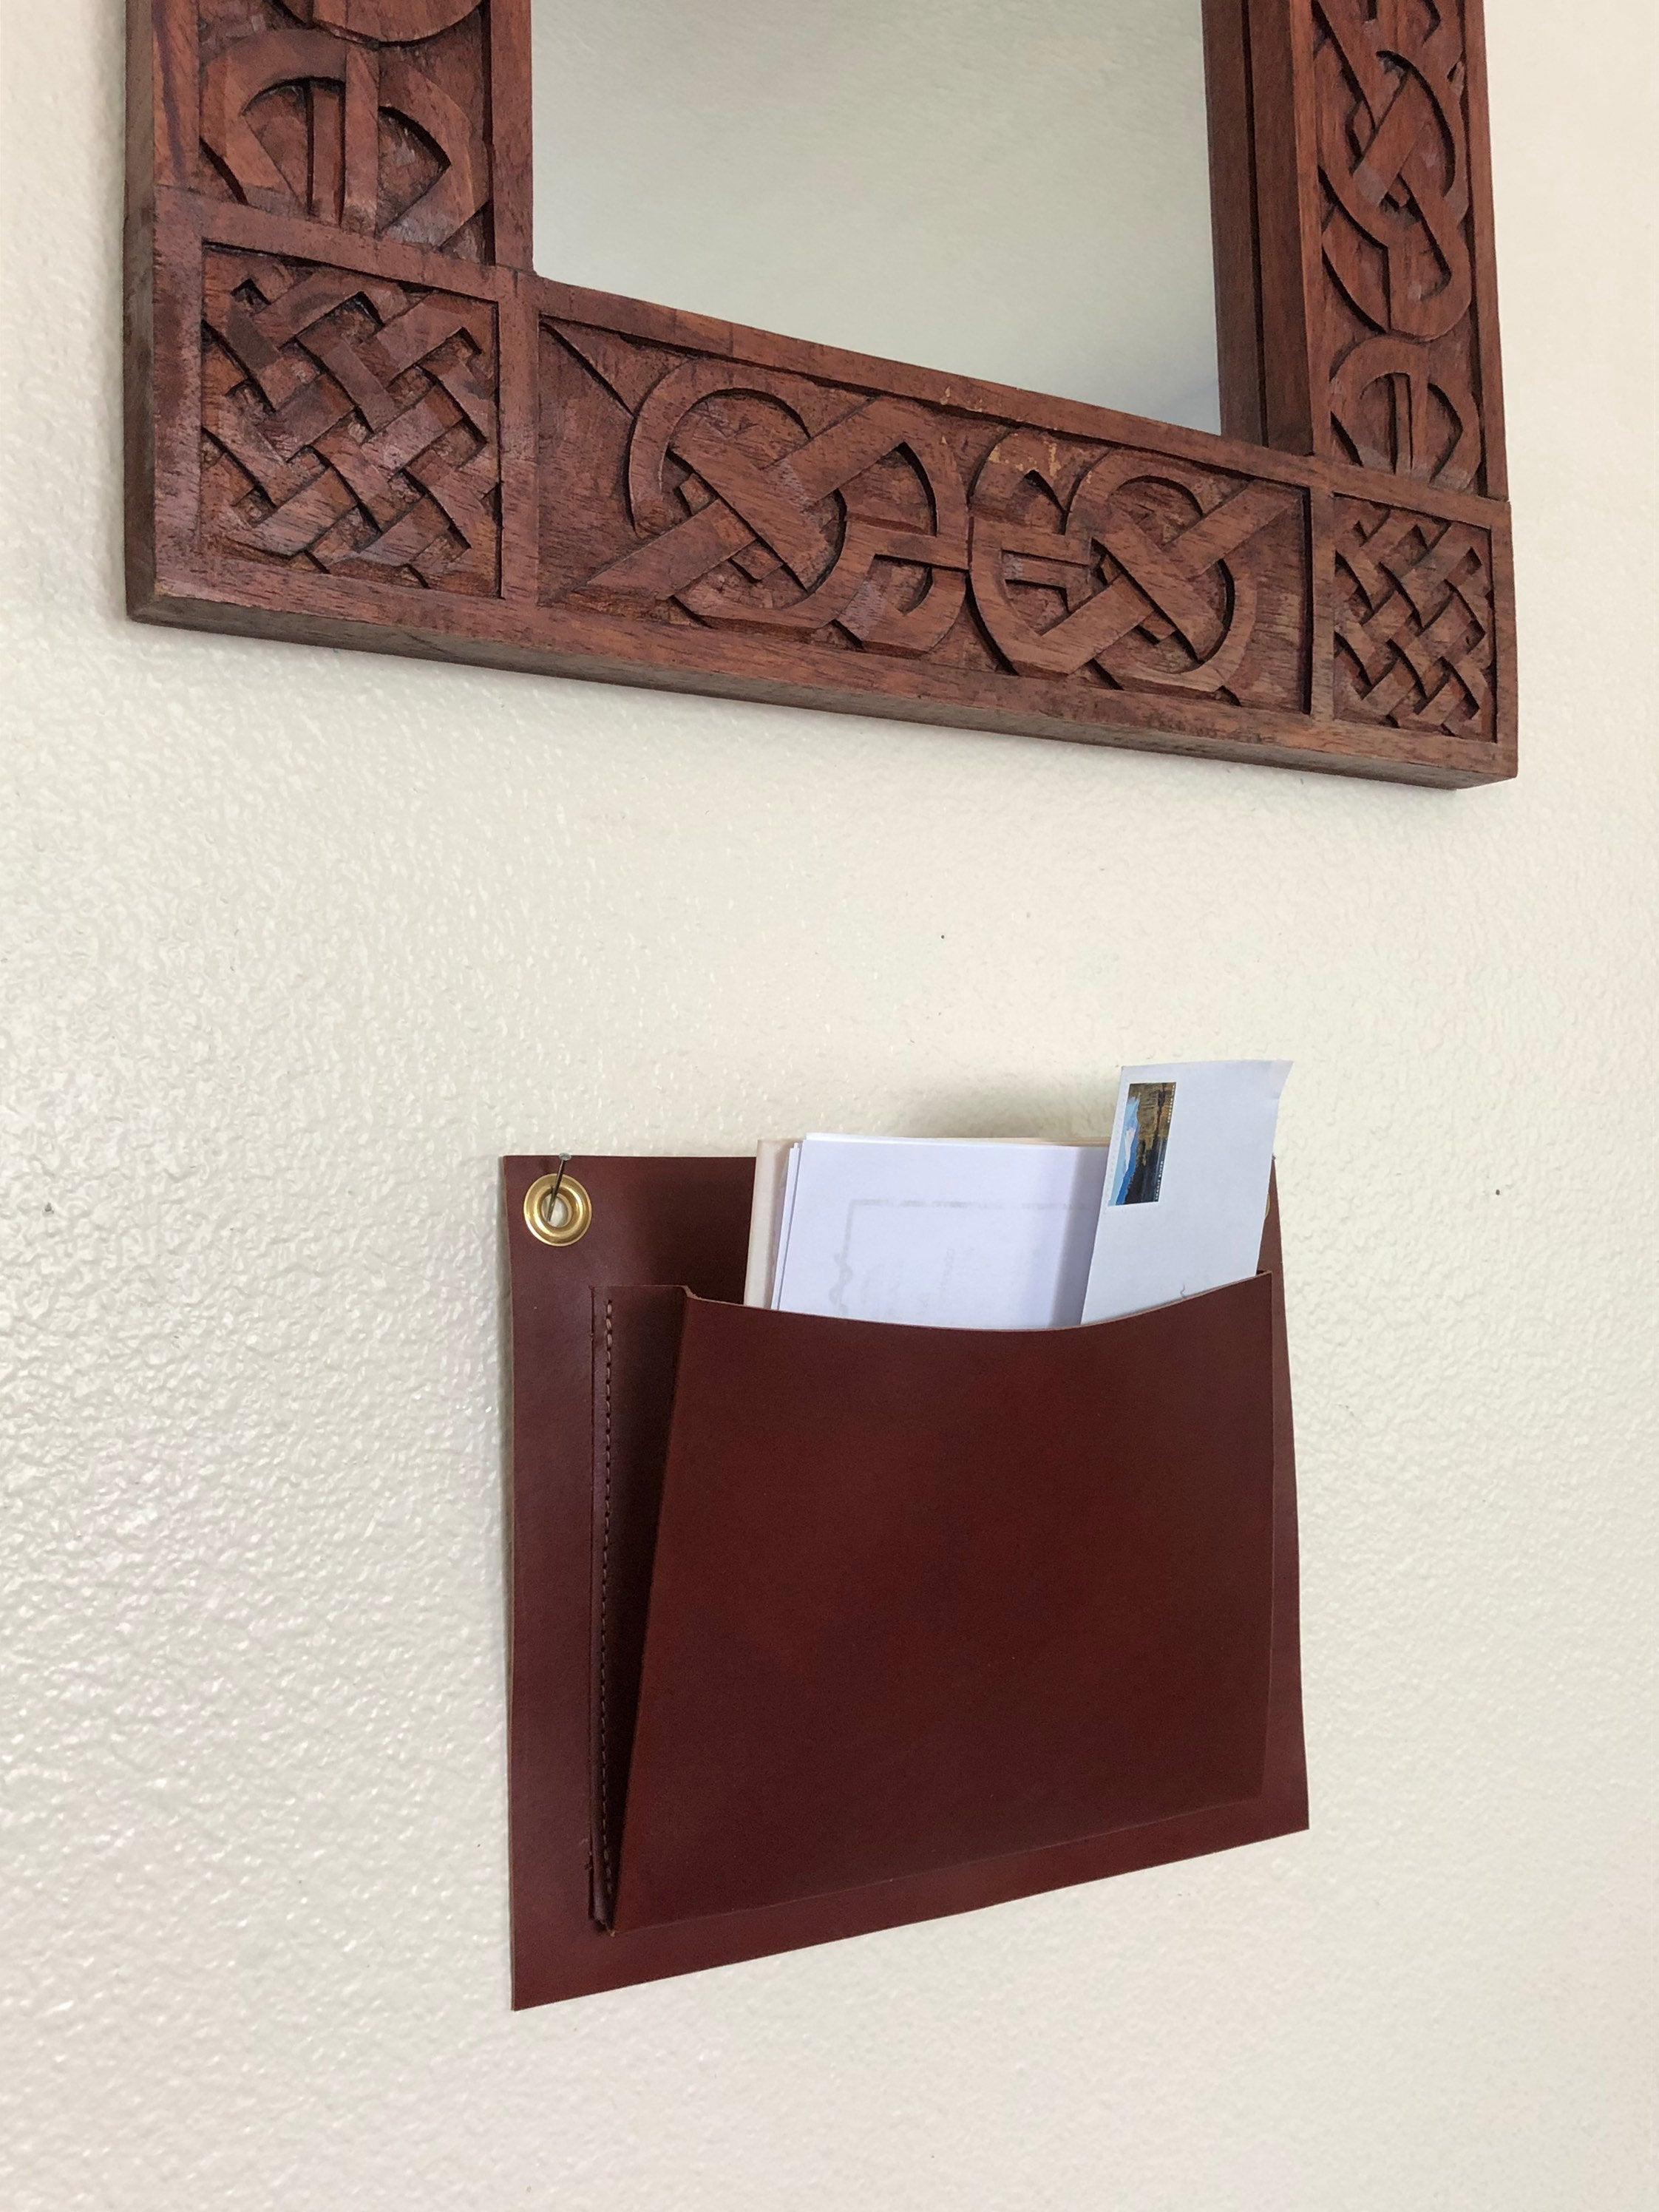 Brown leather wall organizer hangs under mirror and holds mail